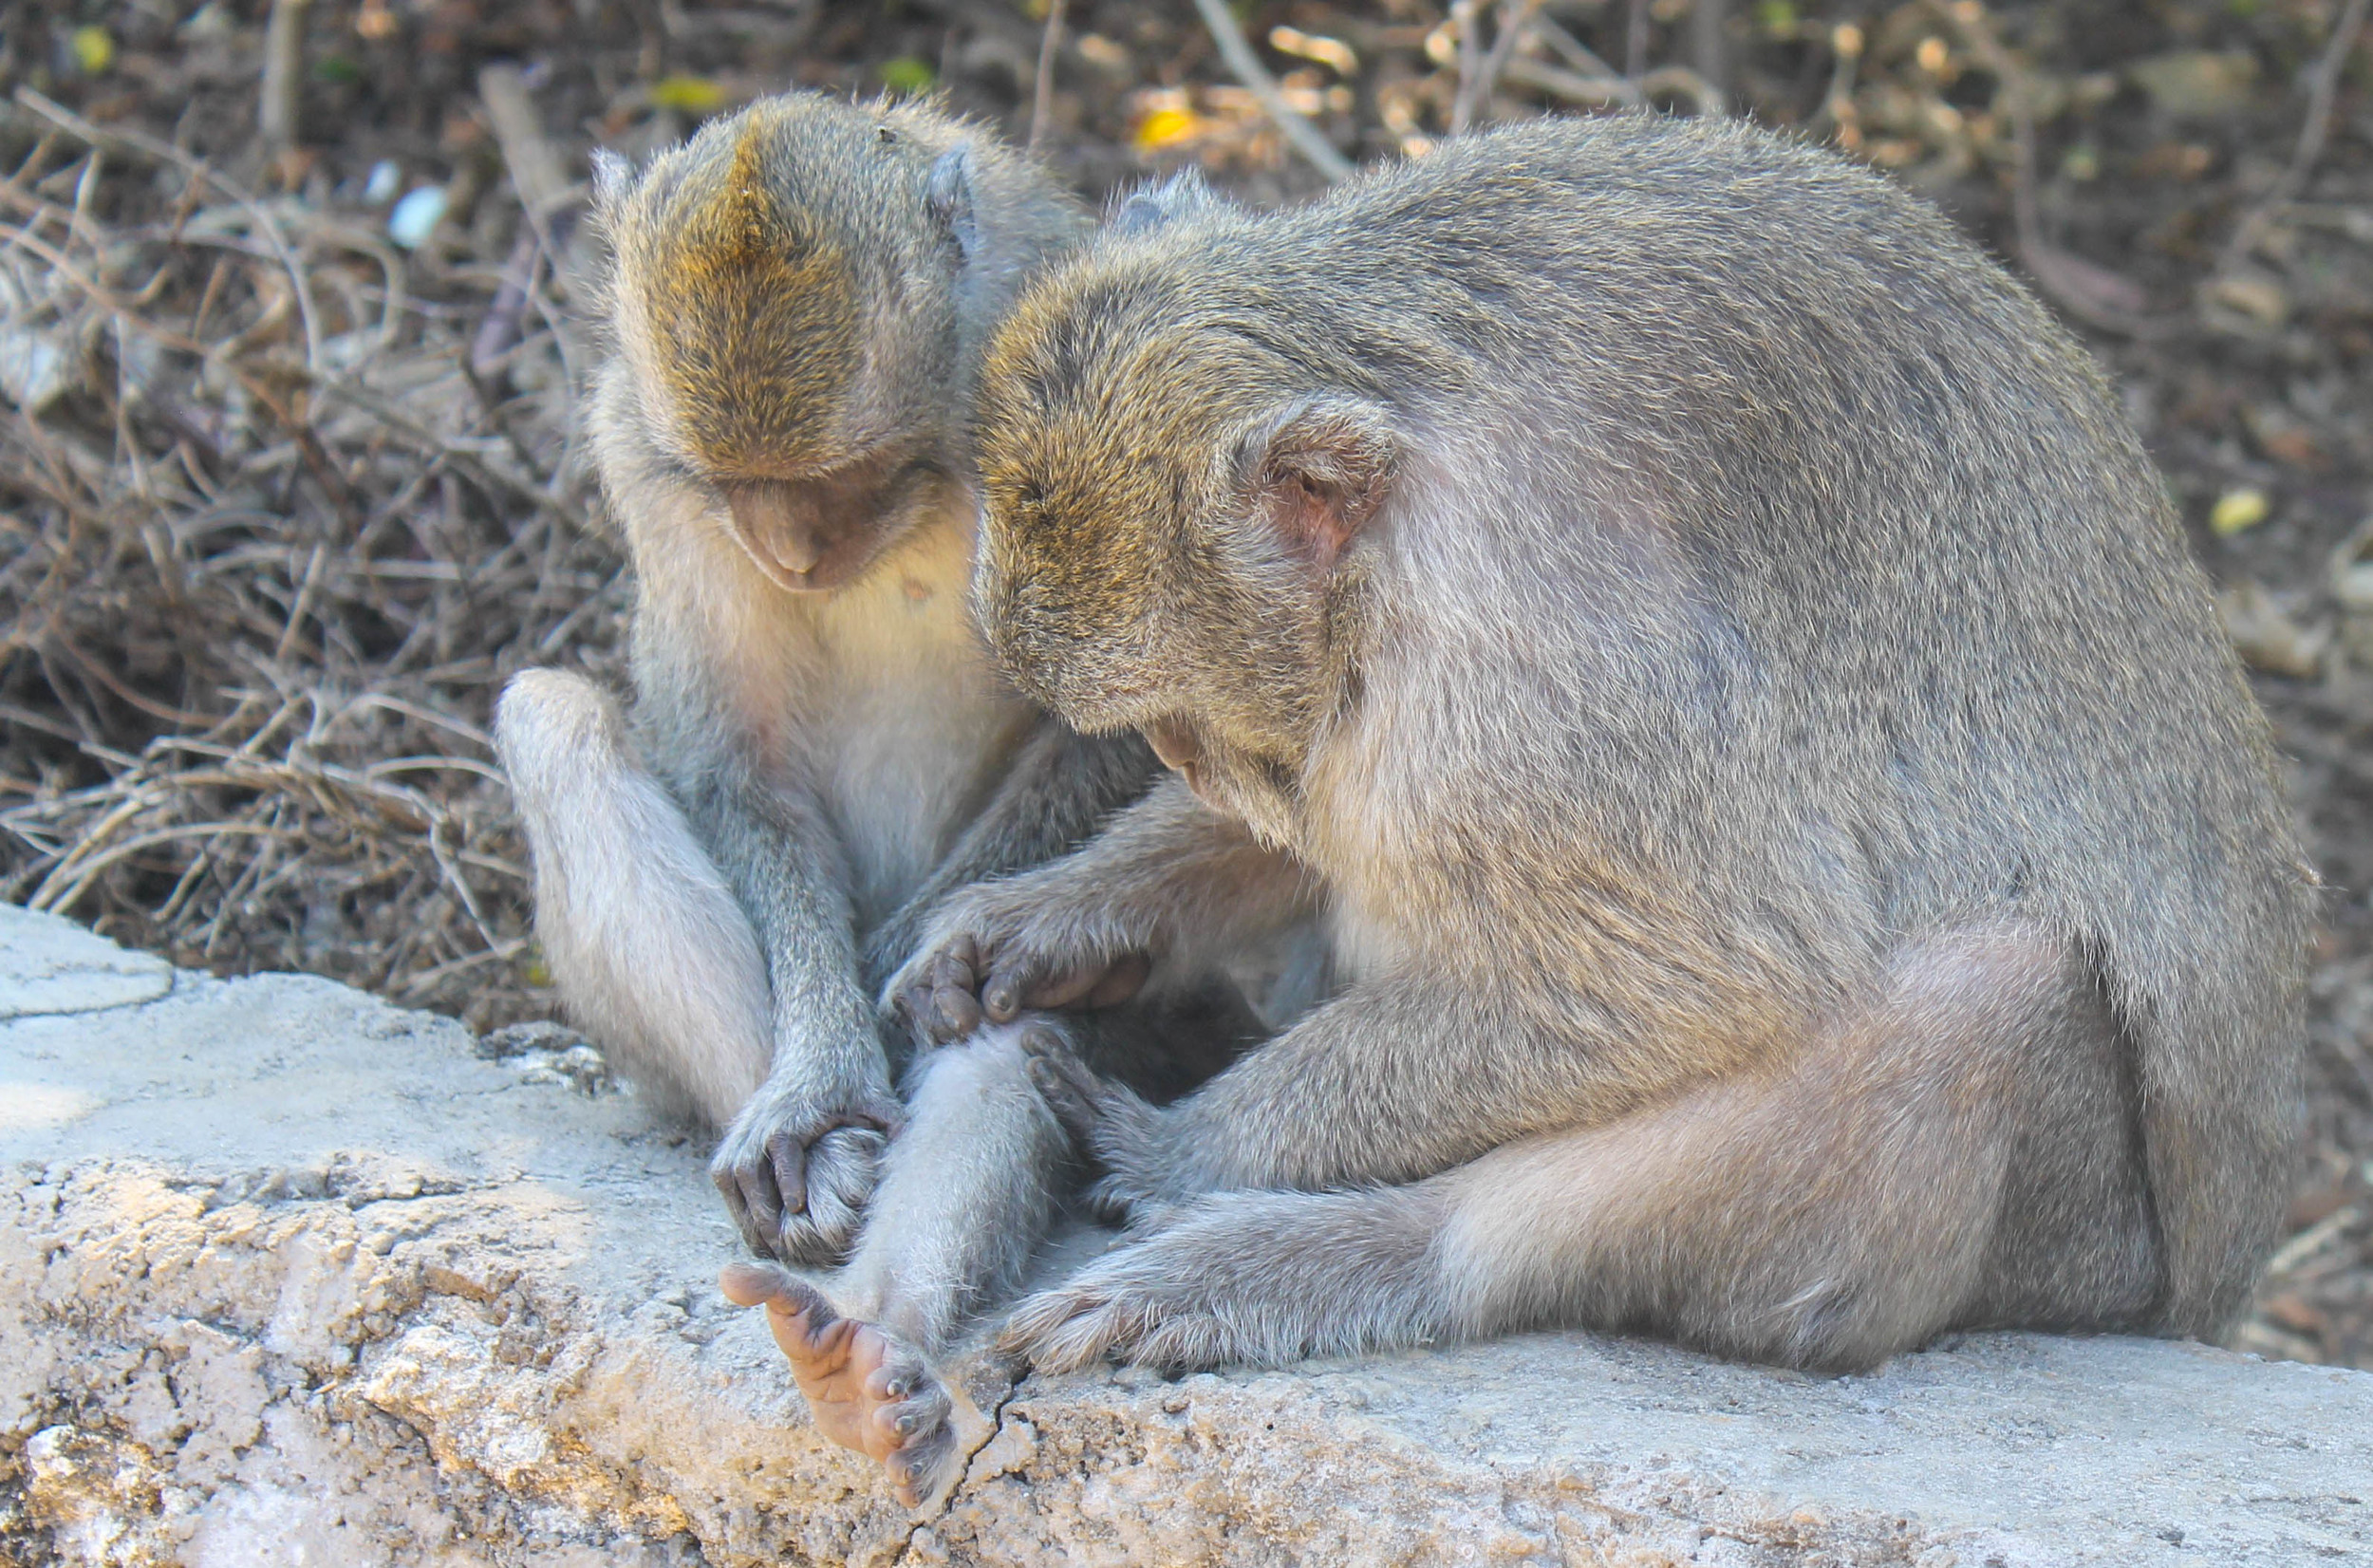 Monkeys looking after one another.